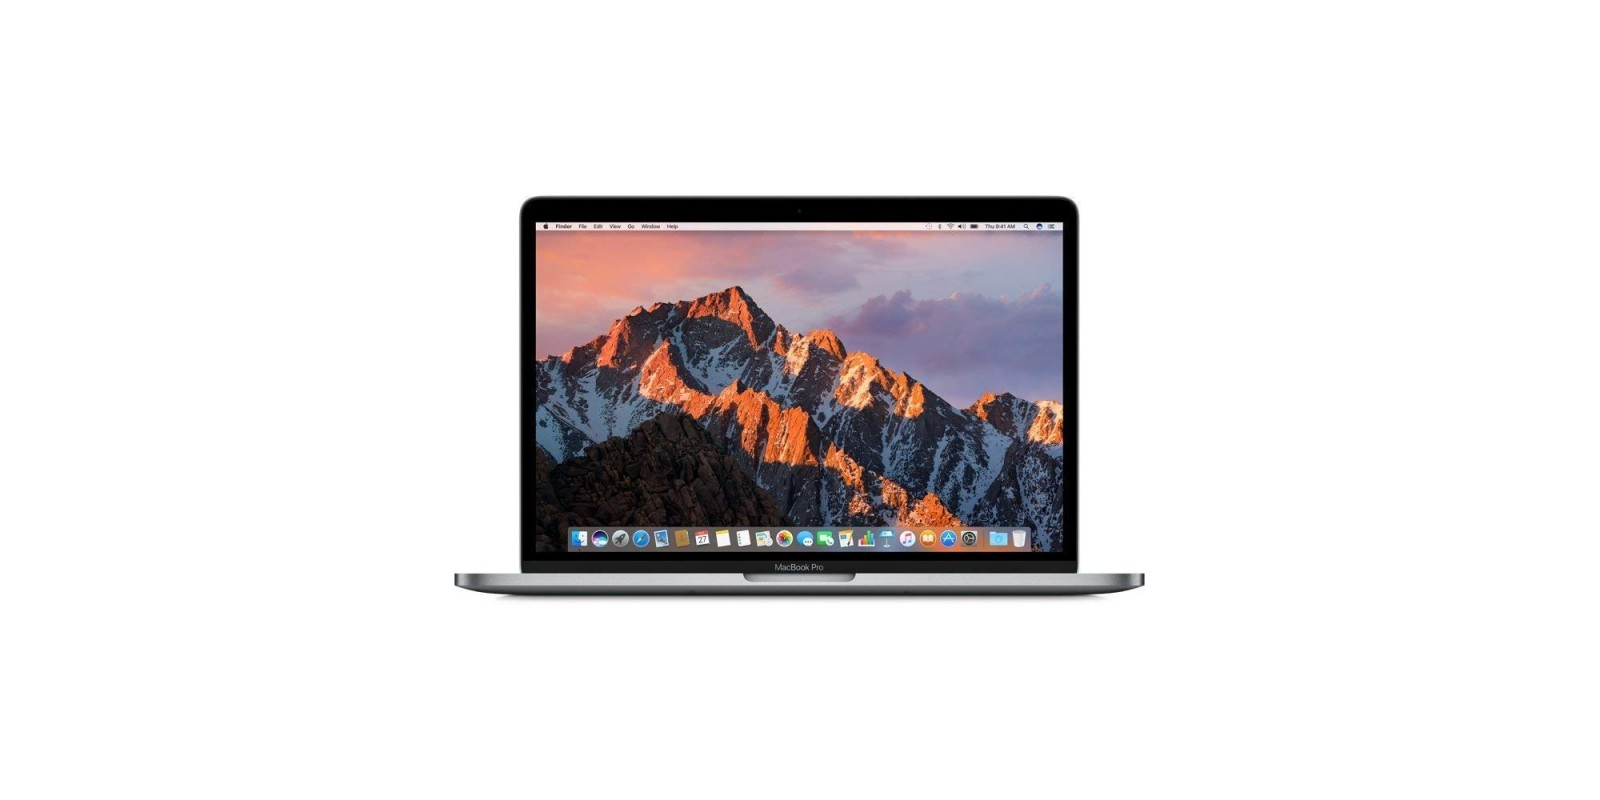 MacBook Pro with Touch Bar – Main